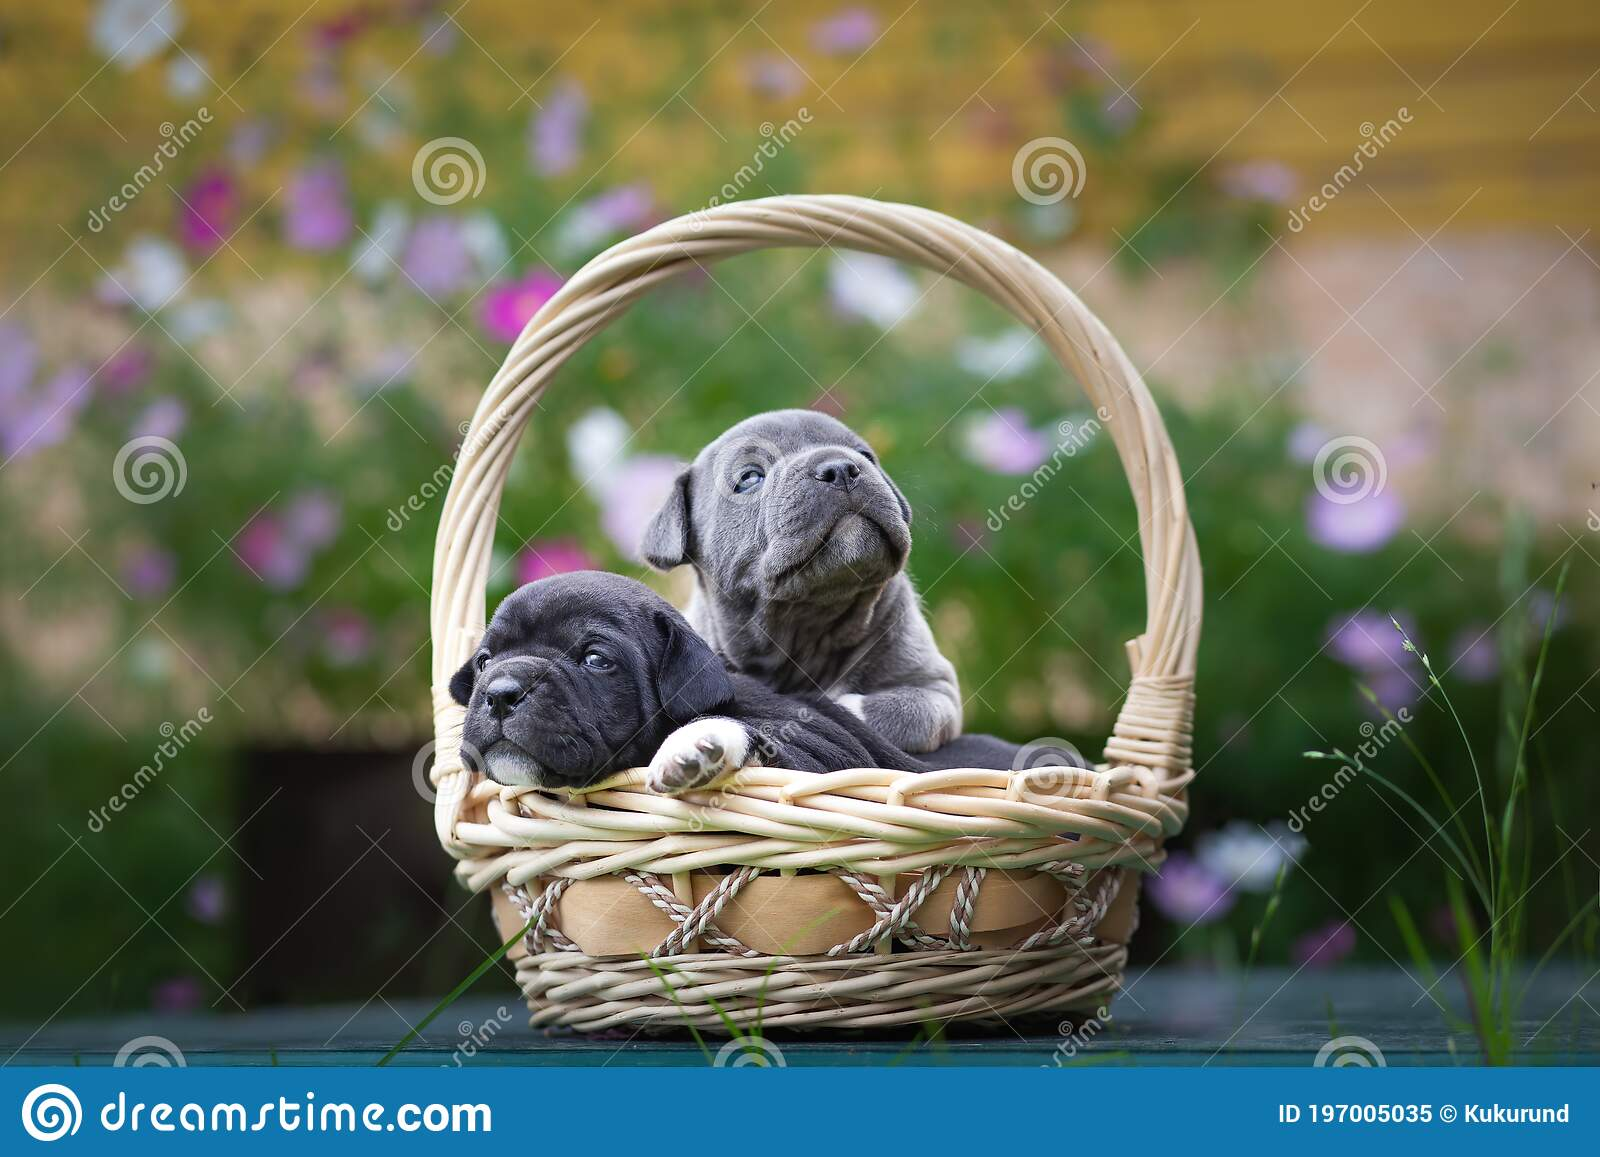 Tiny And Adorable Dog Puppies Breed American Bully Sit In A Wicker Basket Stock Image Image Of Colorful Animal 197005035